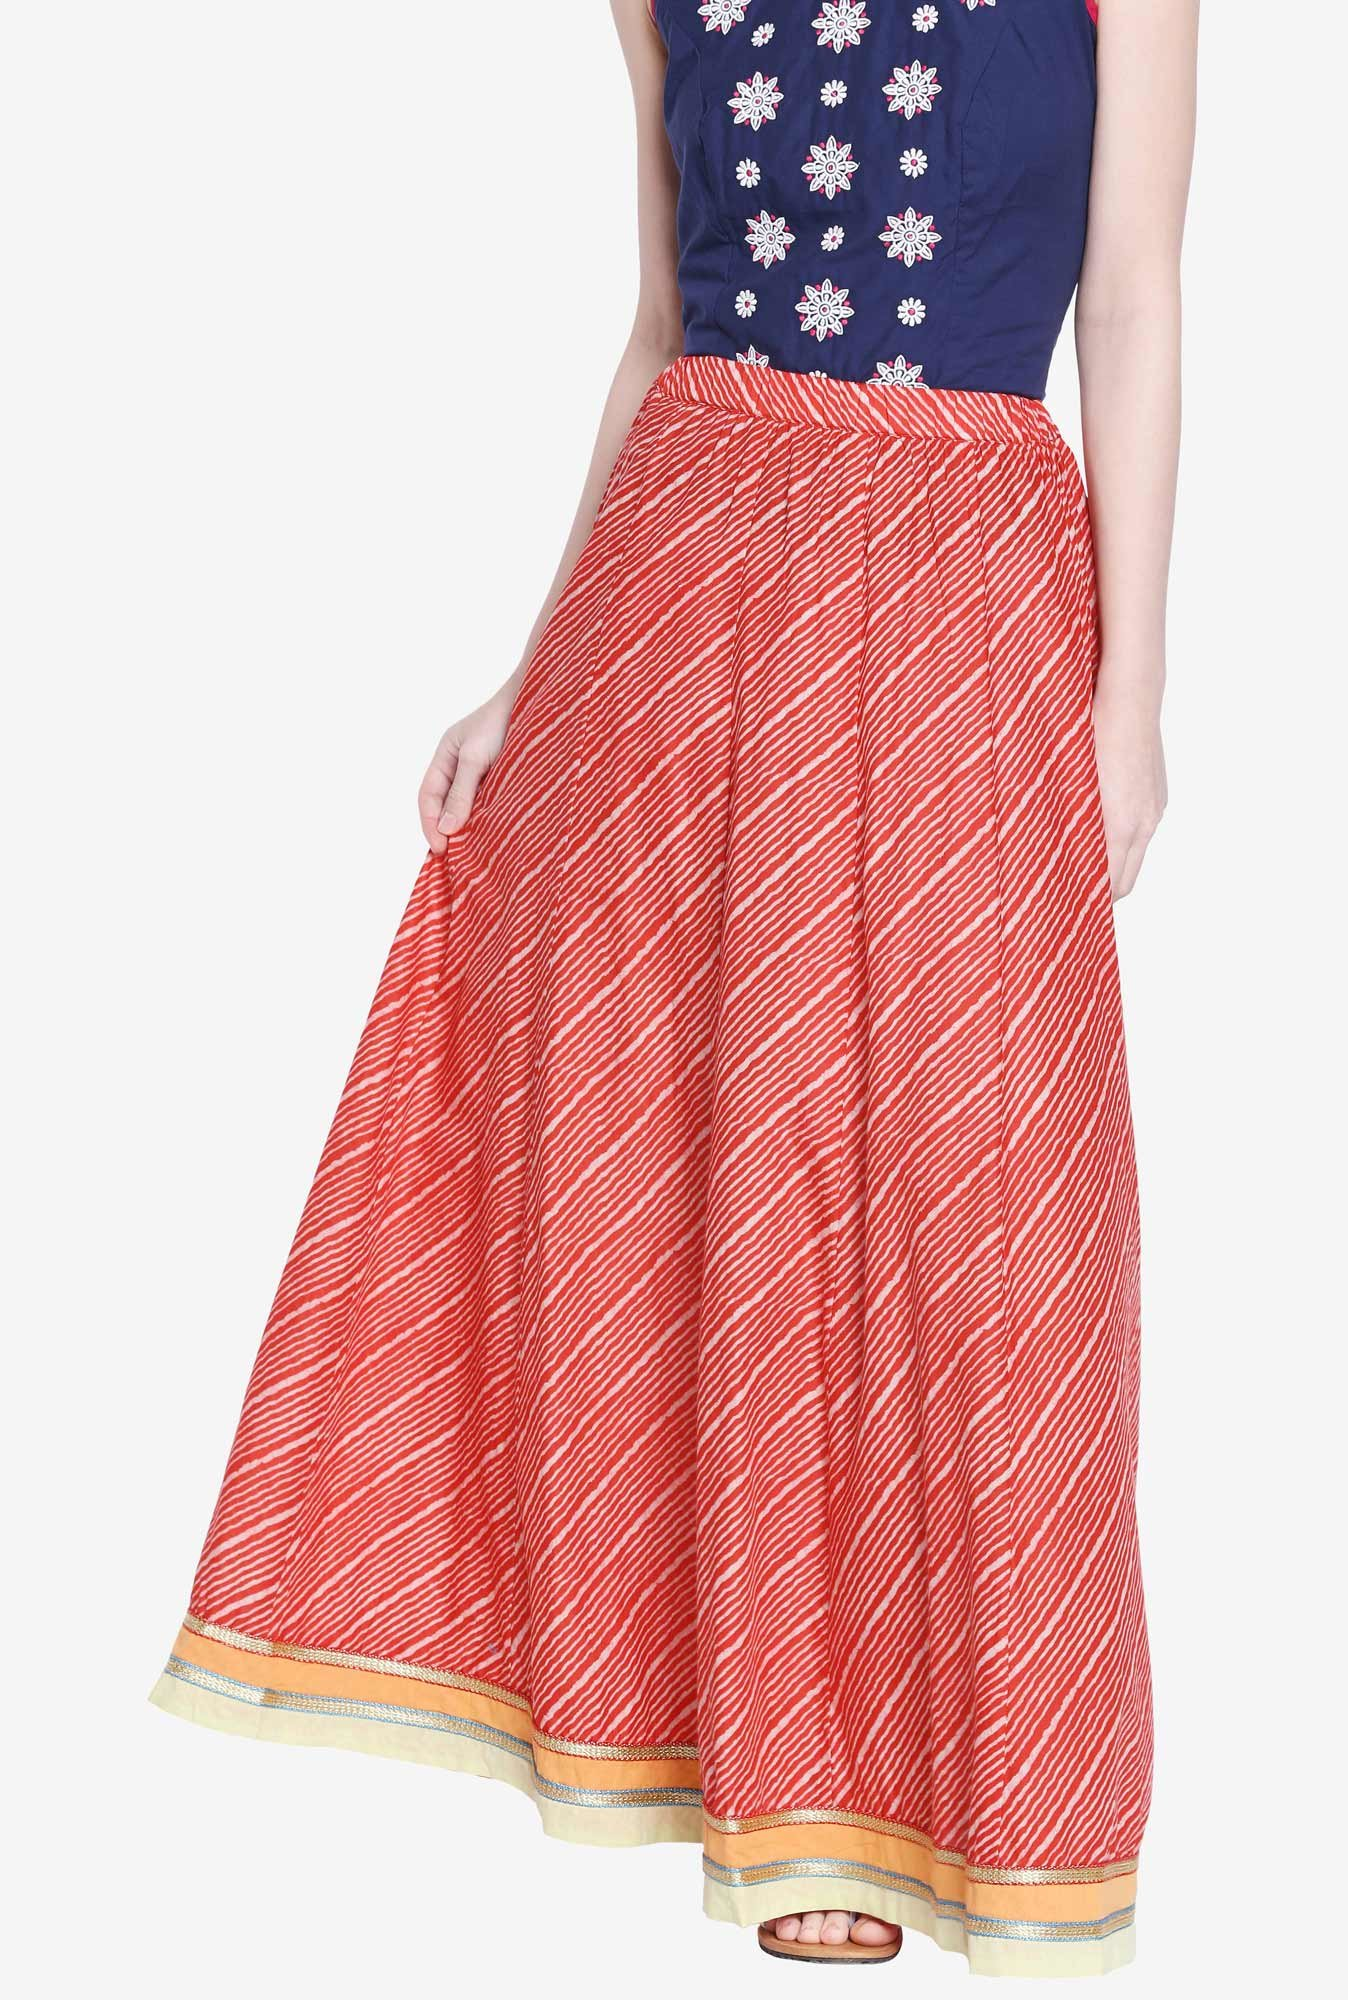 Globus Red Striped Maxi Skirt